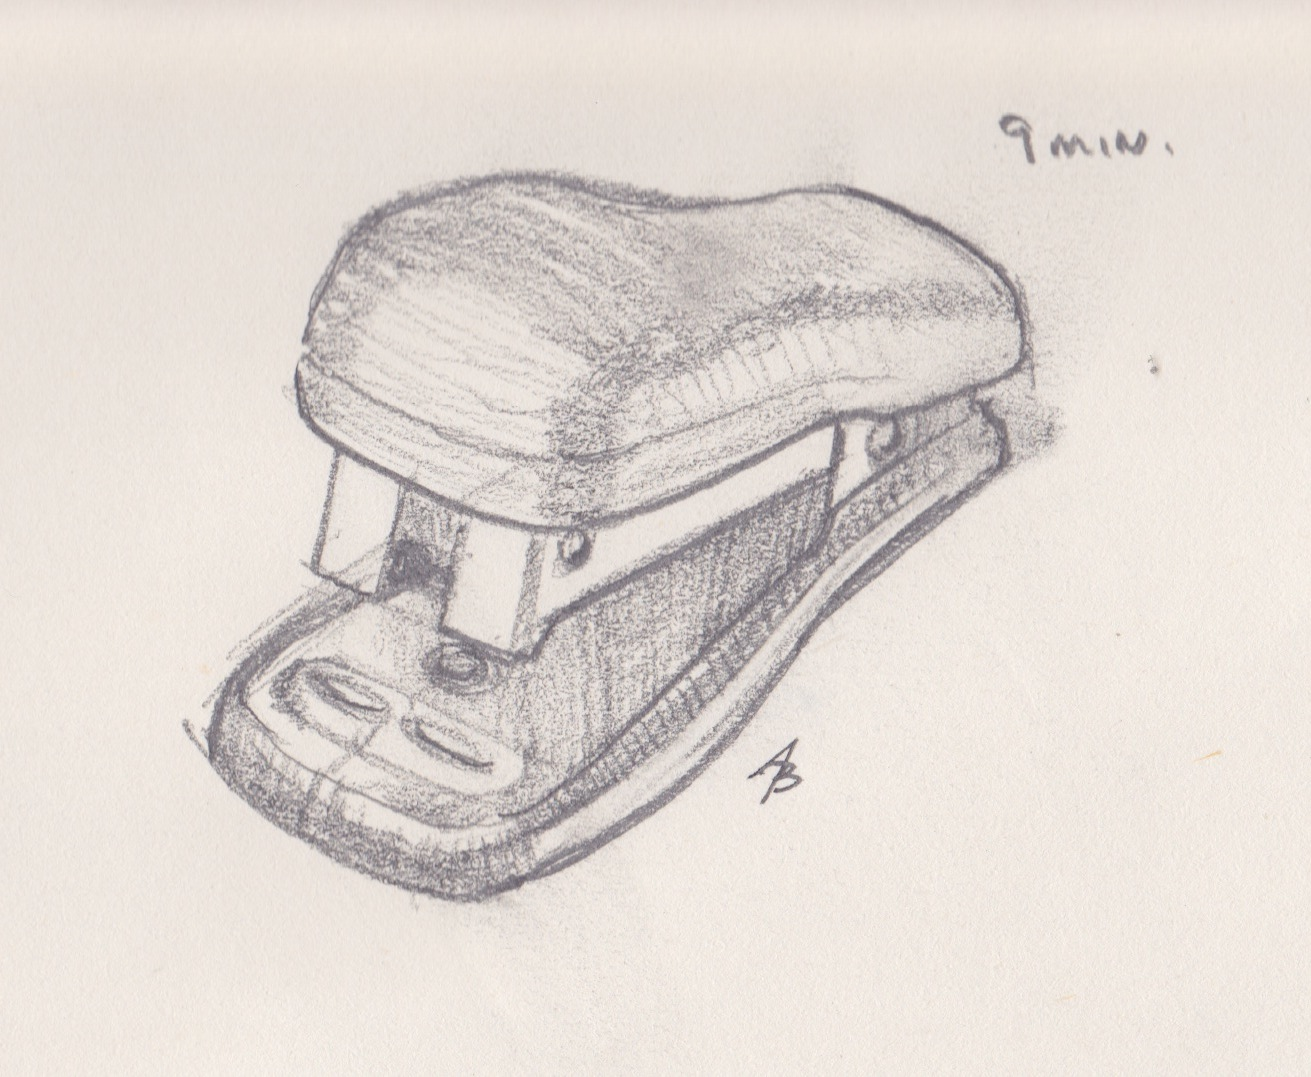 Photos of Everyday Objects That Look Like Simple Drawings  |Pencil Sketch Simple Object